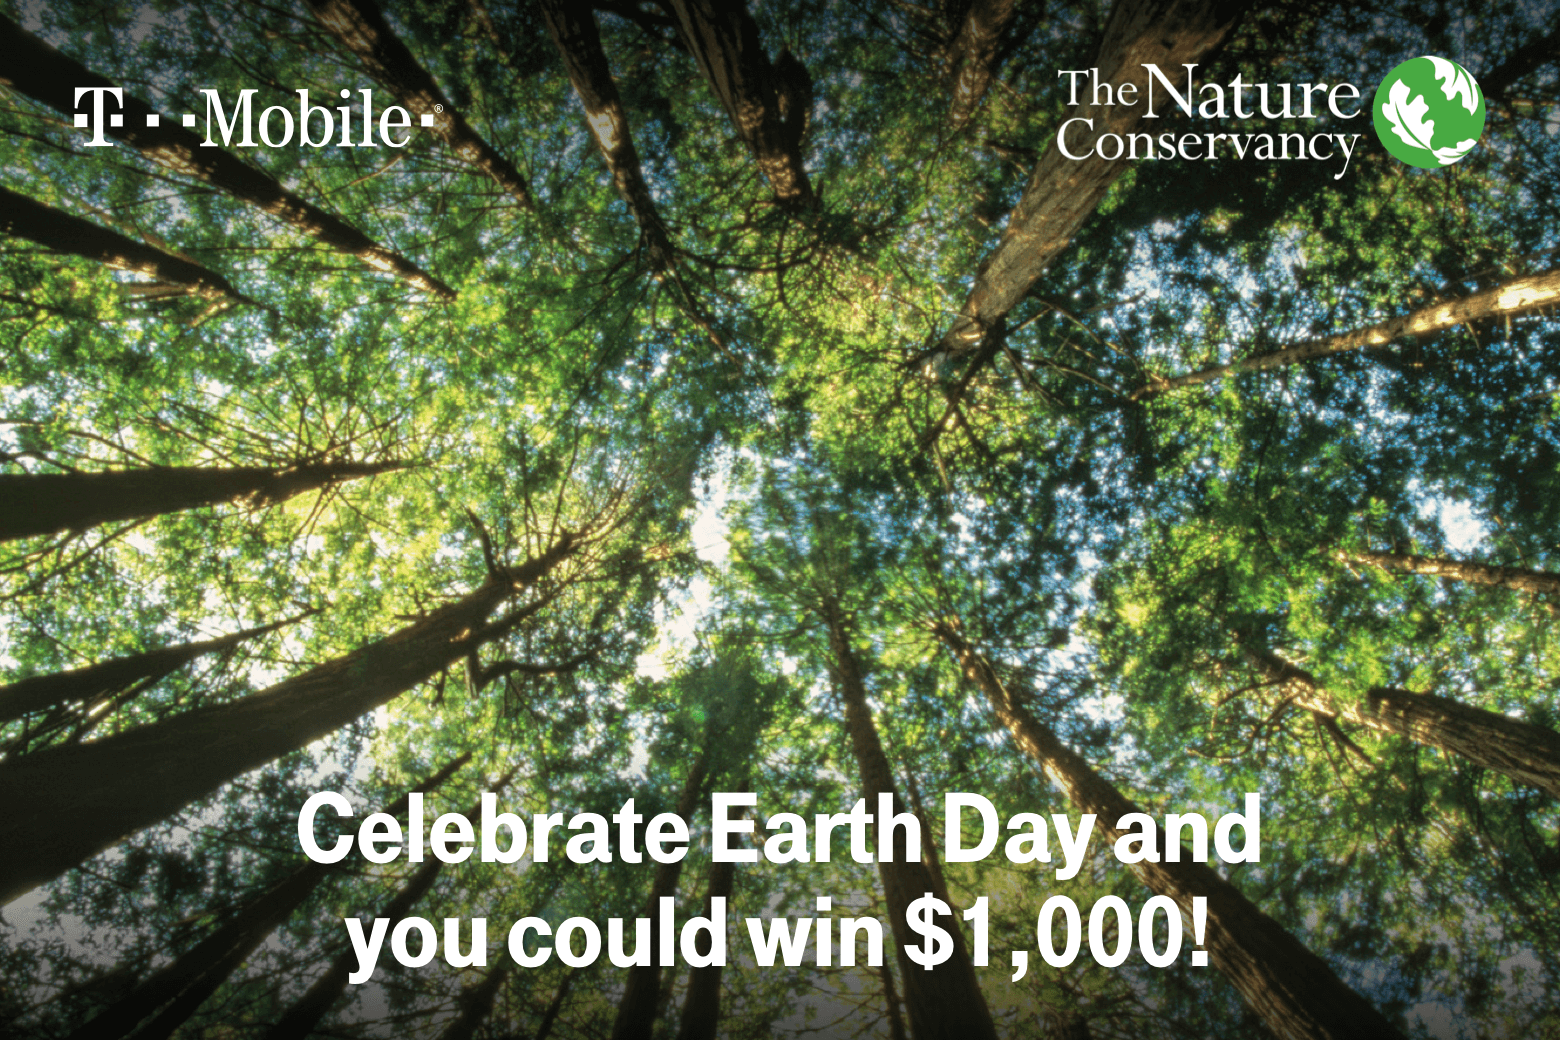 T-Mobile. The Nature Conservancy. Celebrate Earth Day and you could win $1,000